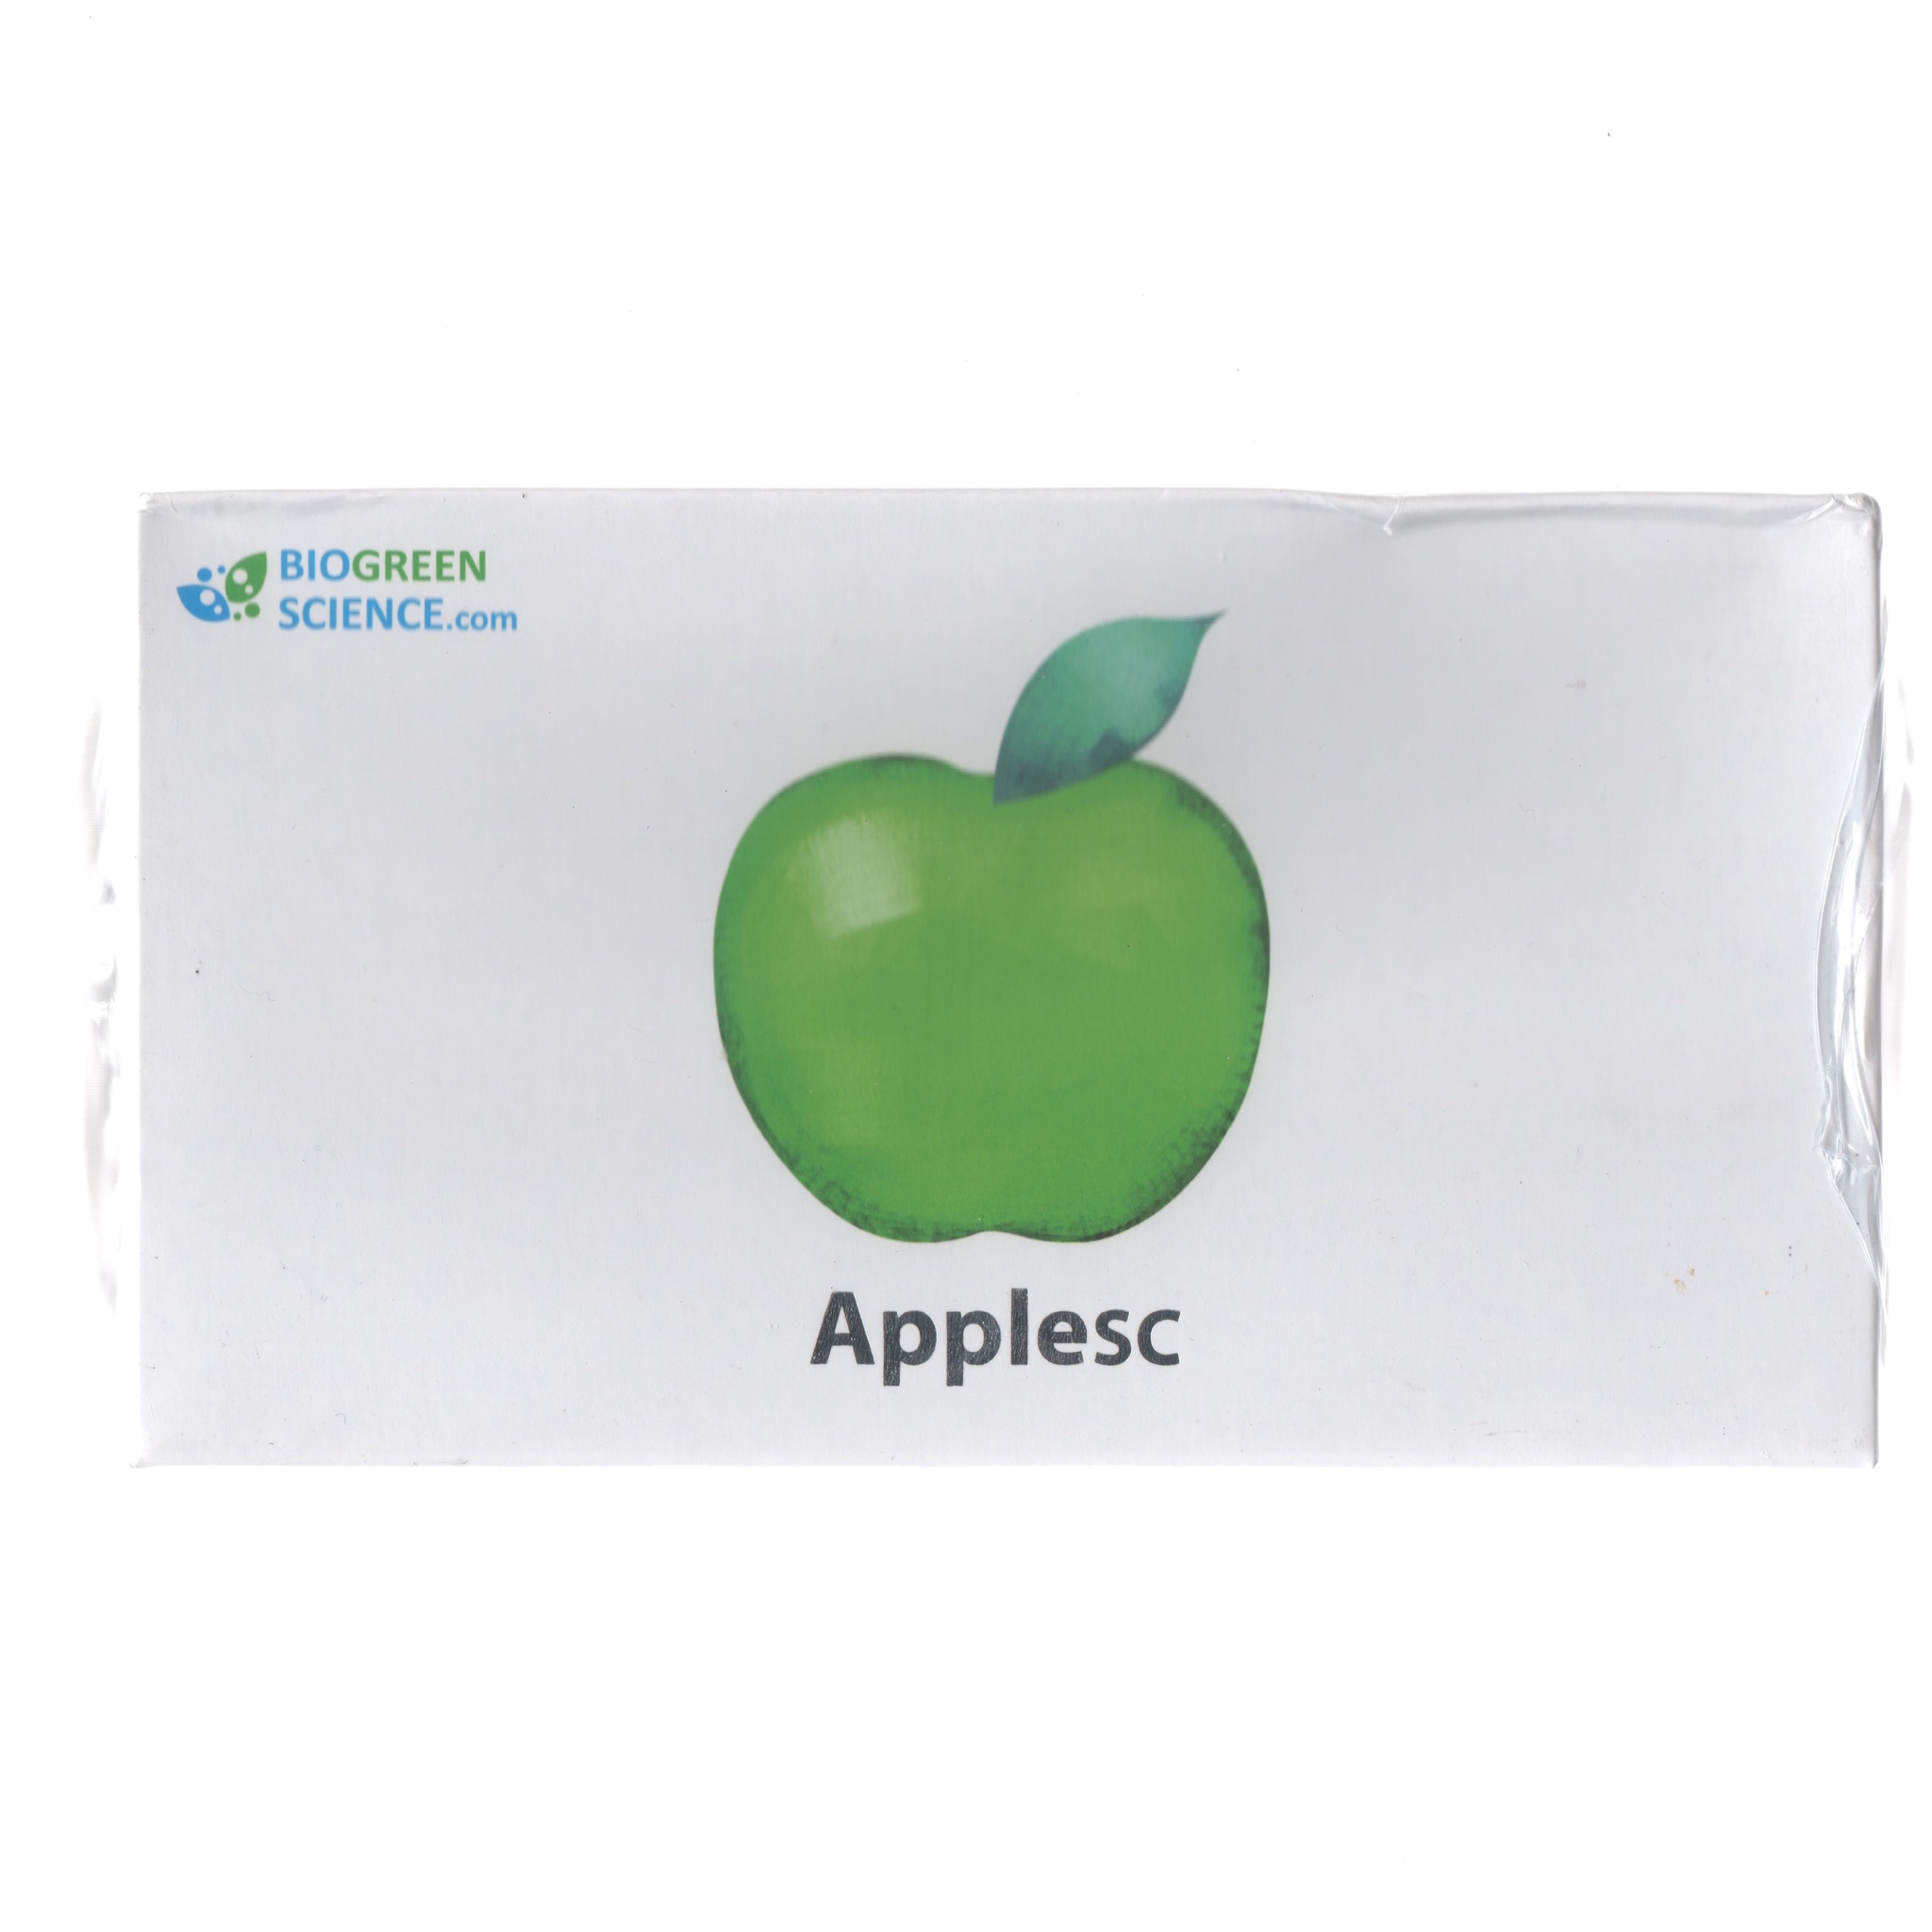 Applesc Stemcell Apple Biogreen 64 Daftar Harga Stem Cell Terbaru 2018 Buruan Cek Plus Science 30 Pcs 1 Box